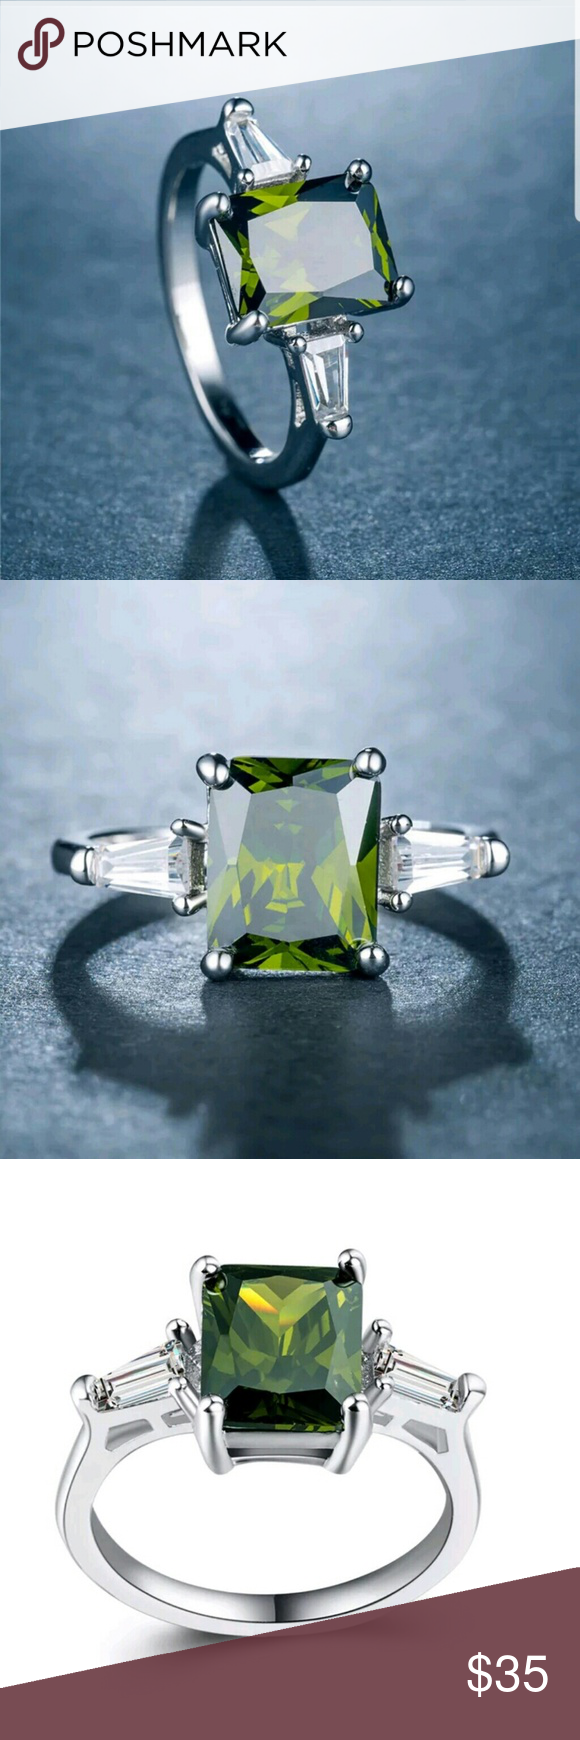 New beuatiful staped s925 peridot ring Brand new staped sterling silver princess cut peridot ring in various sizes huitain Jewelry Rings #myposhpicks